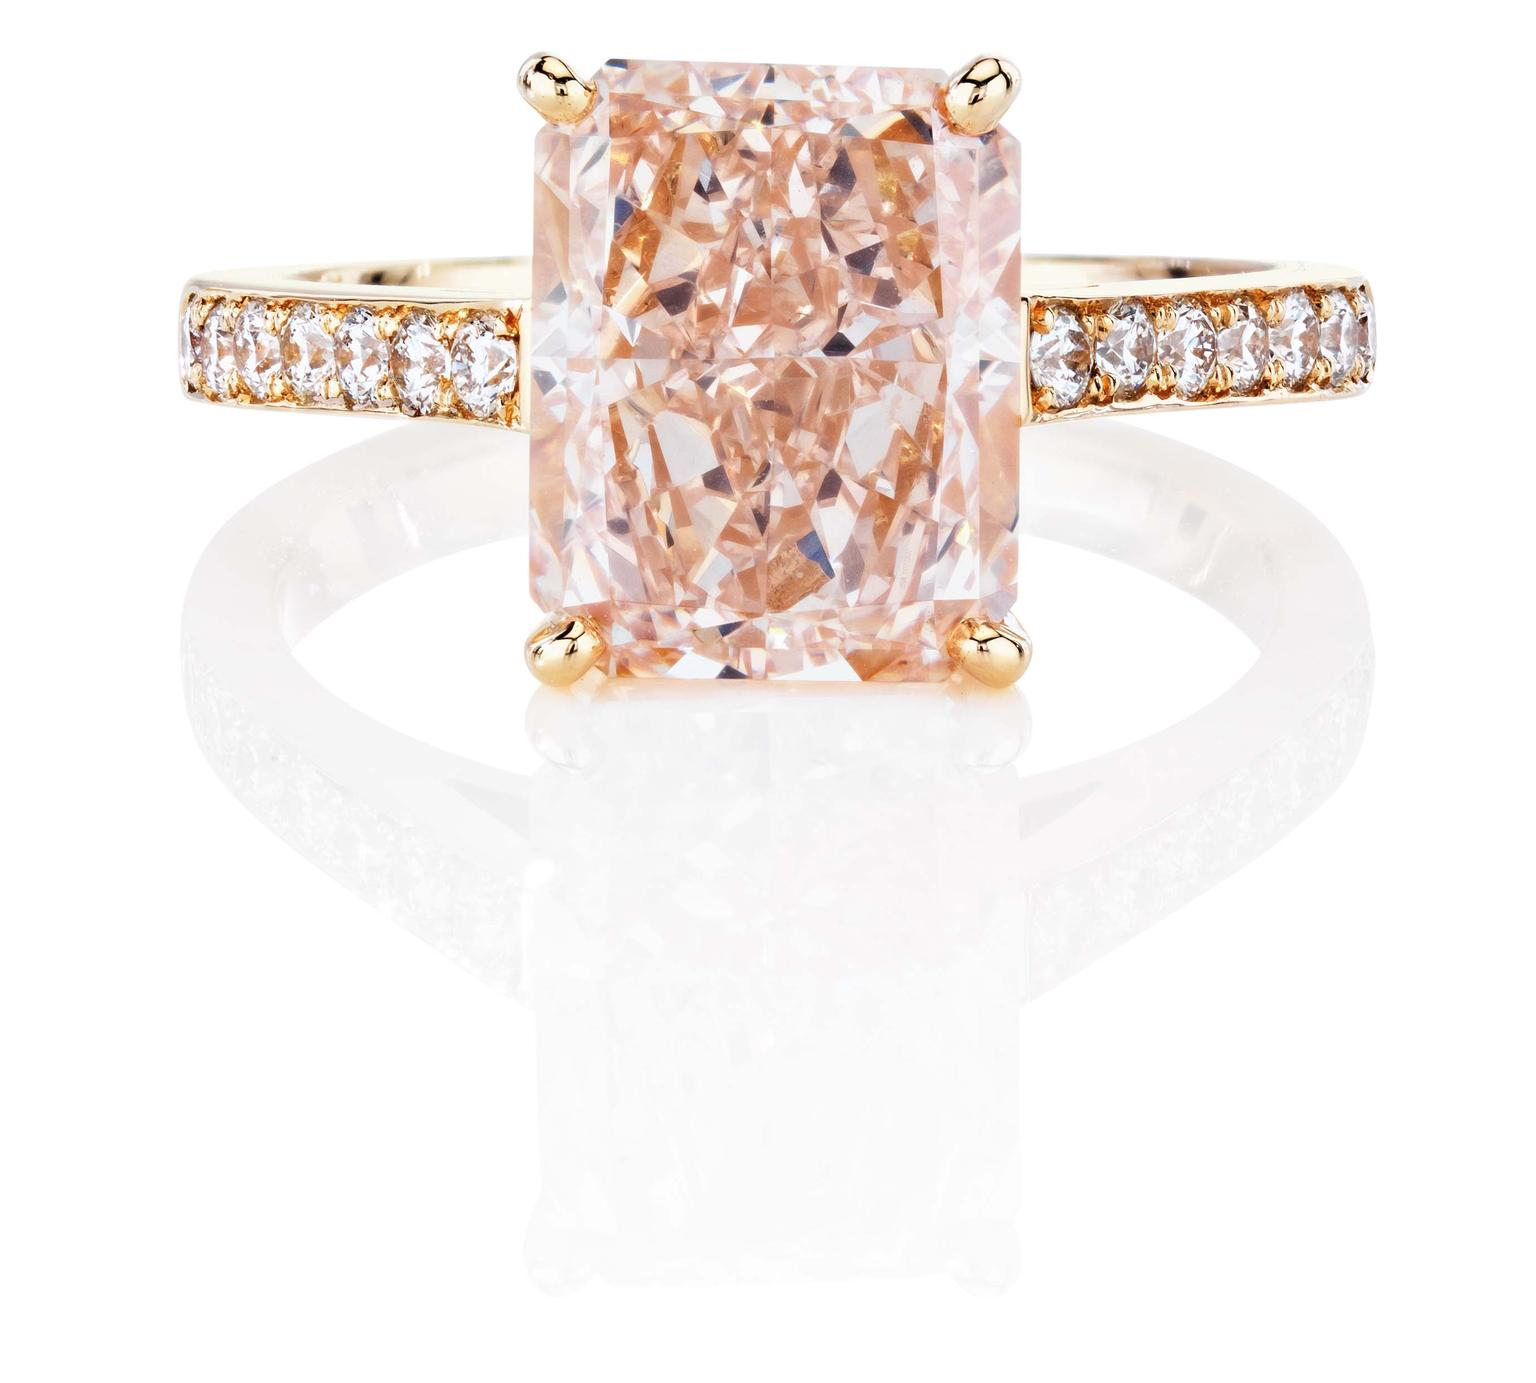 De Beers 1888 Master Diamonds DB Classic ring, set with a Radiant fancy pink diamond with a pavé diamond set band.